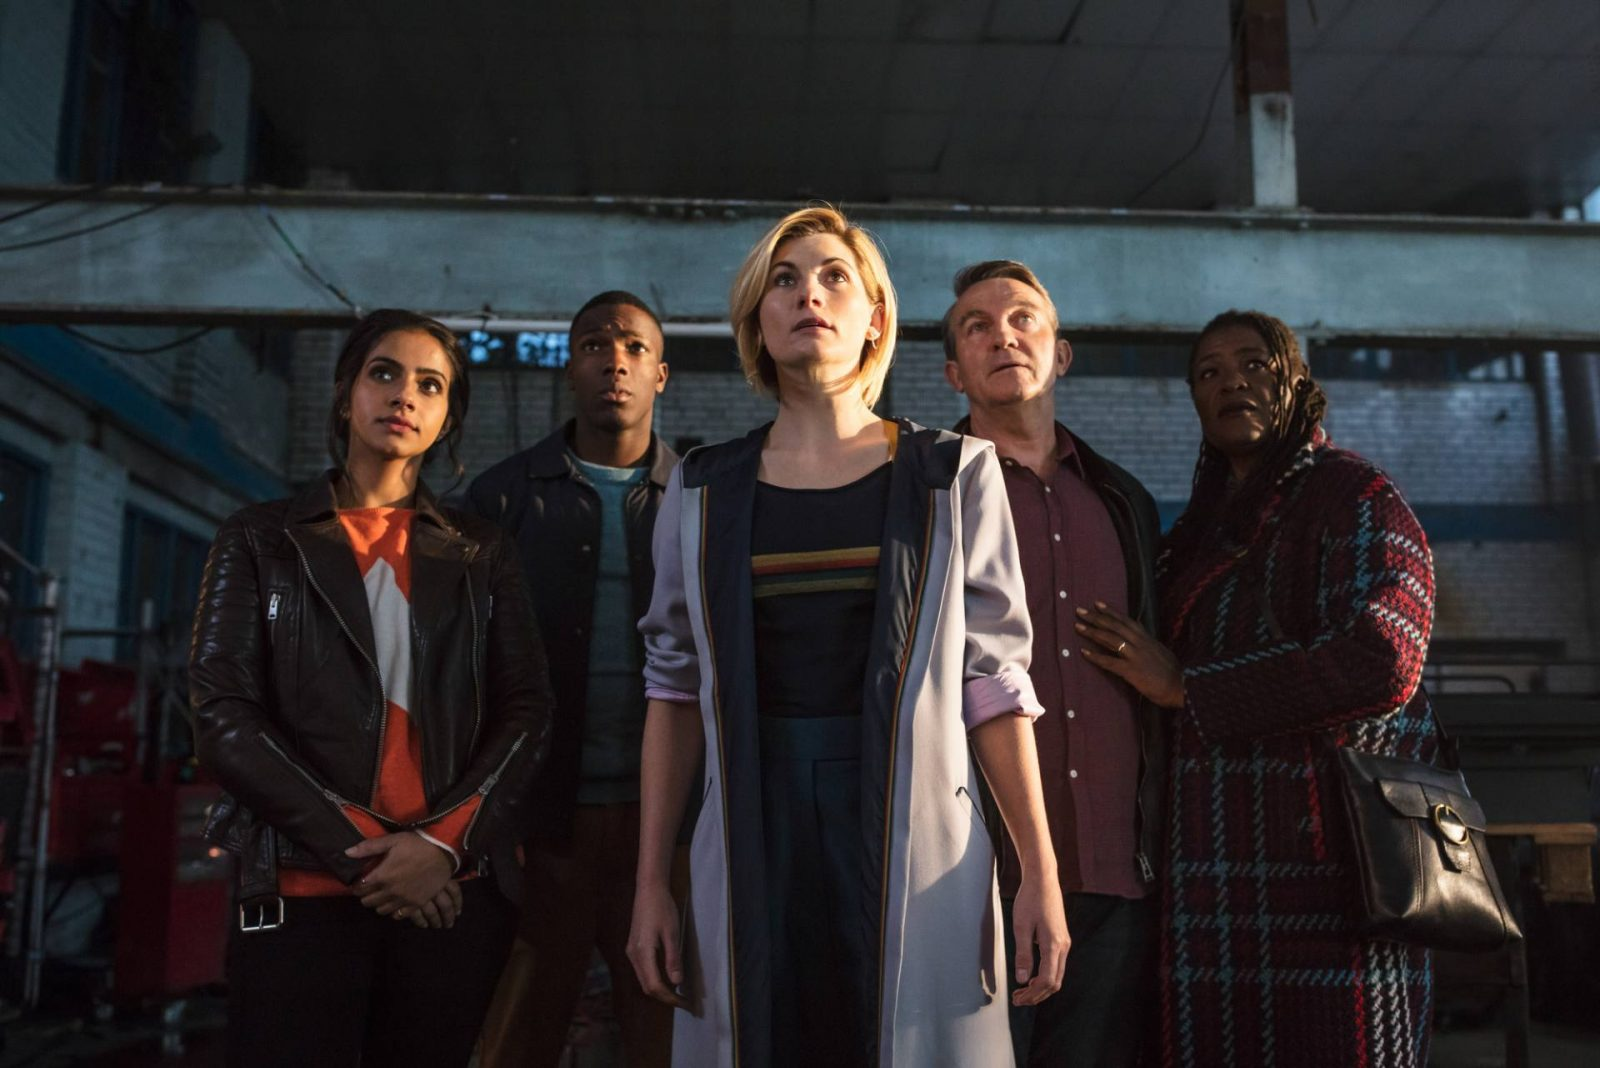 tv review: doctor who – the woman who fell to earth, bbc one;